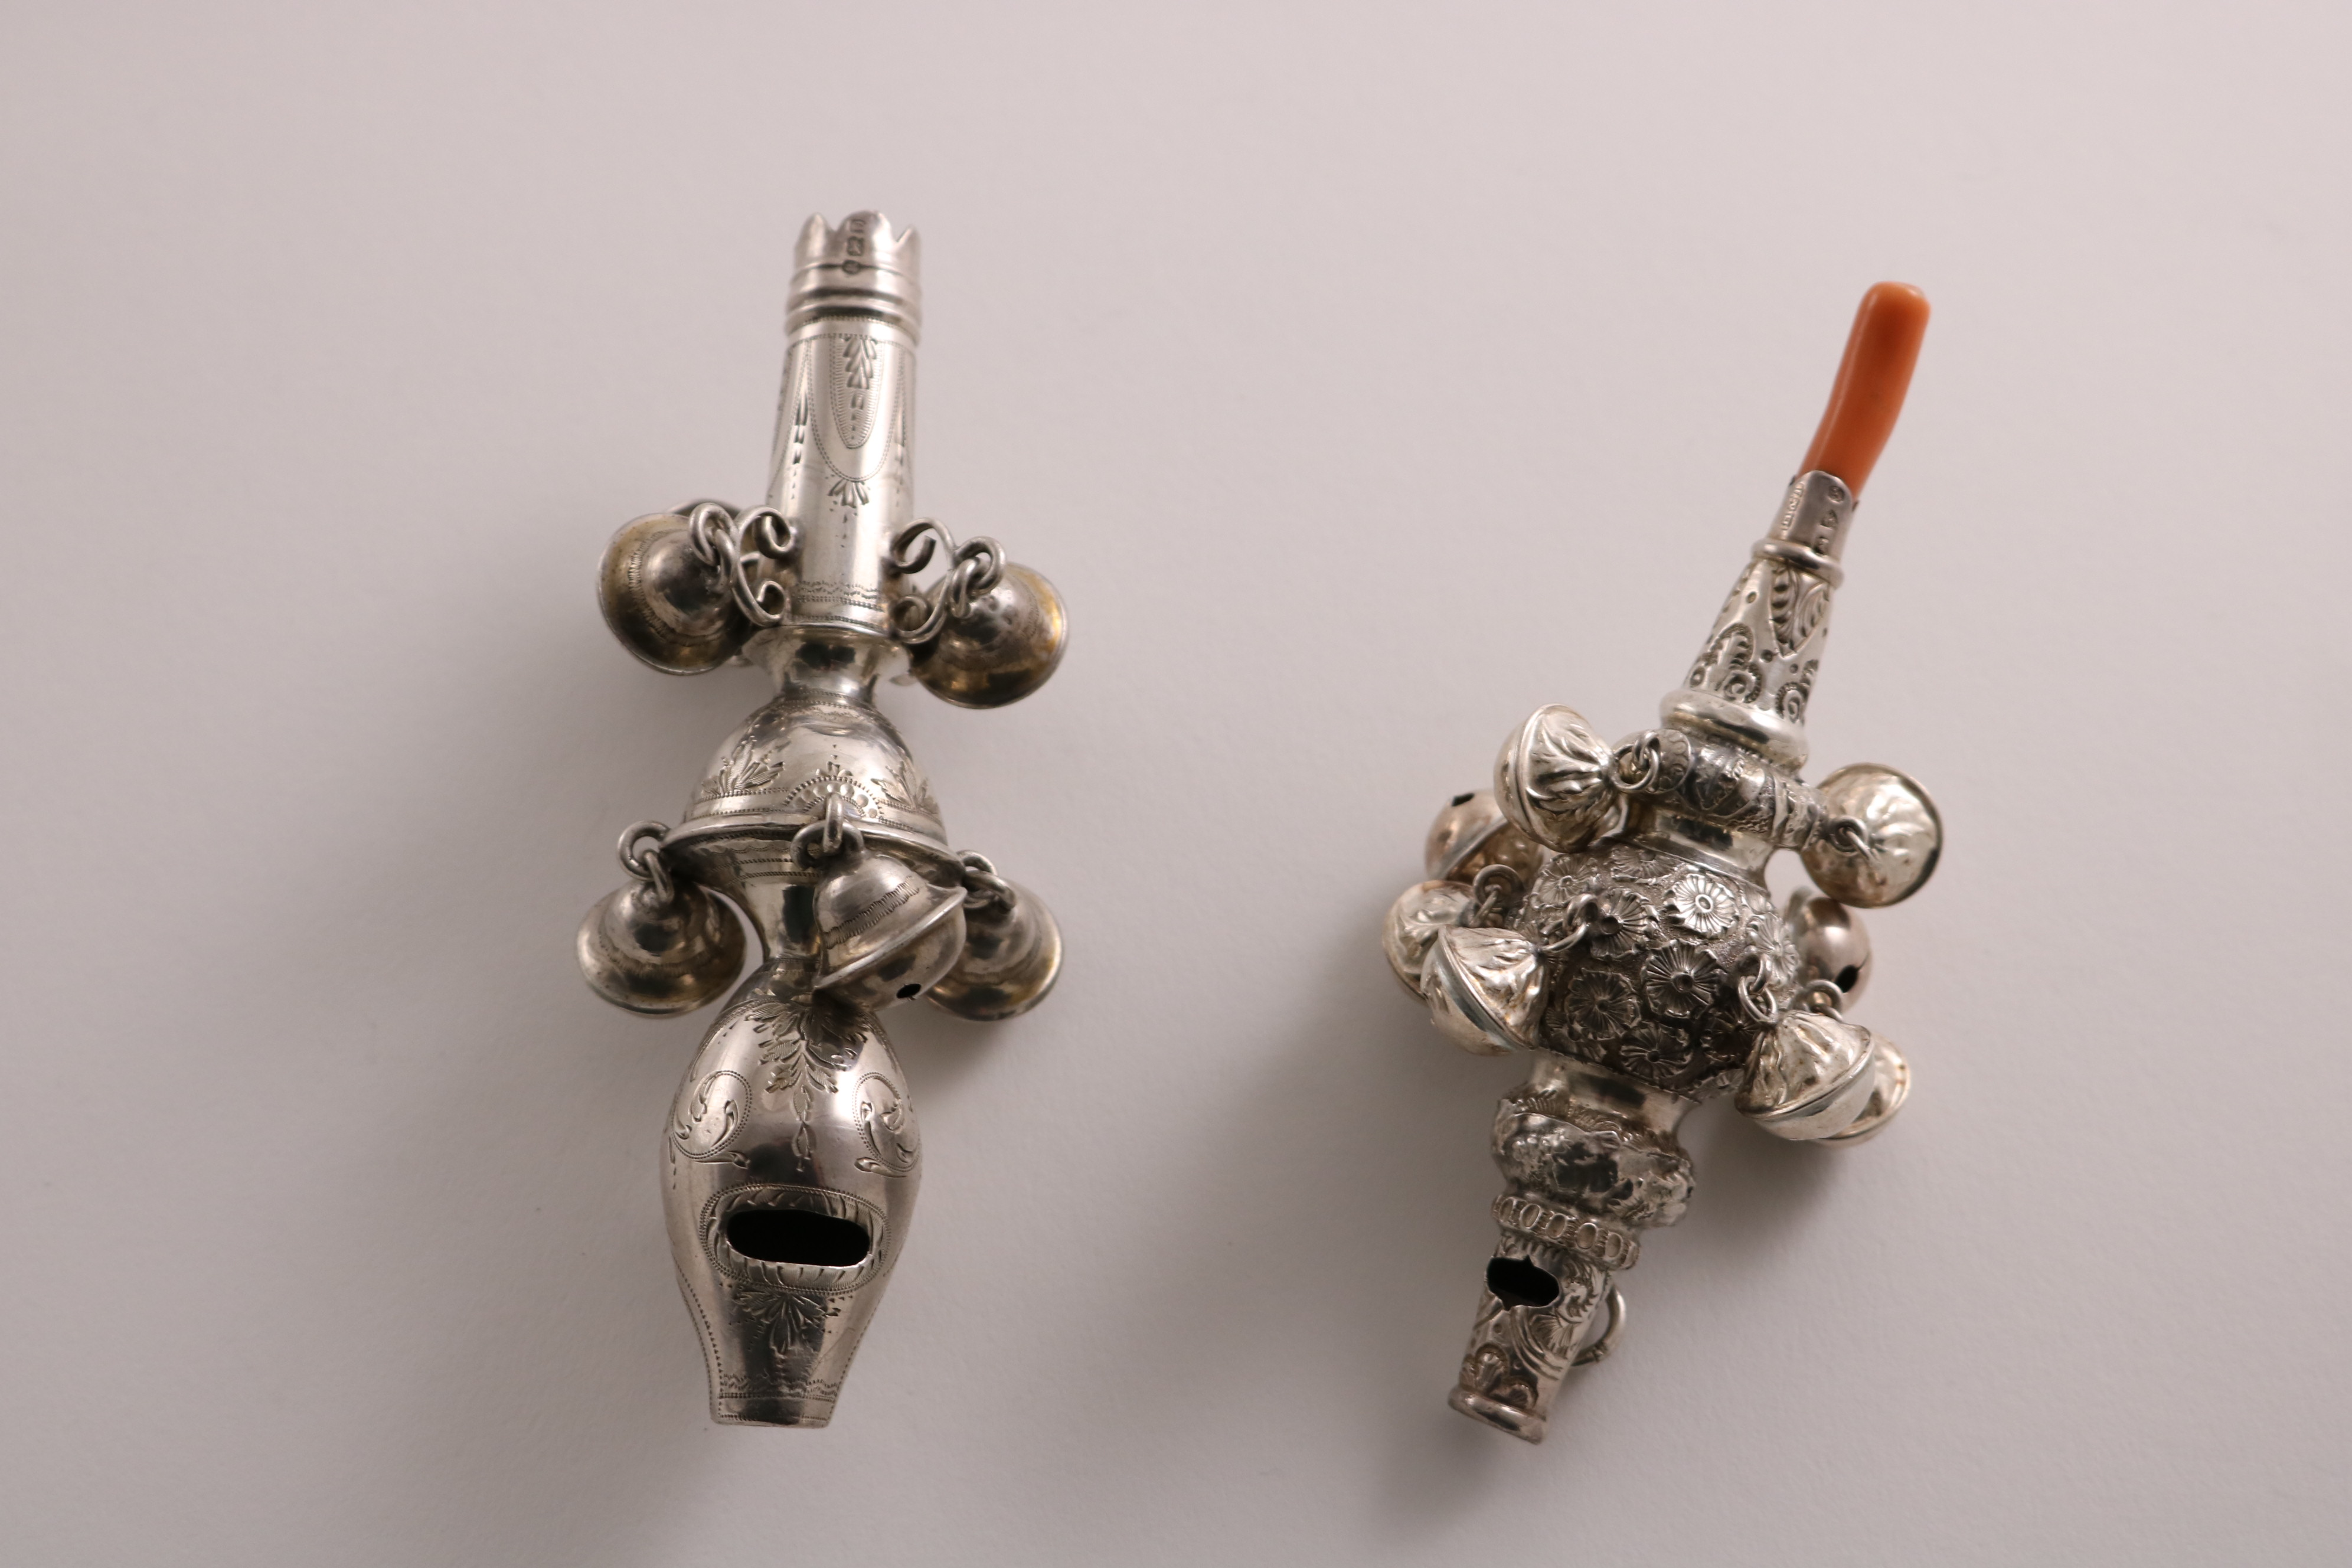 Lot 30 - A GEORGE III ENGRAVED SILVER RATTLE with a whistle terminal and seven bells dependant (lacking one